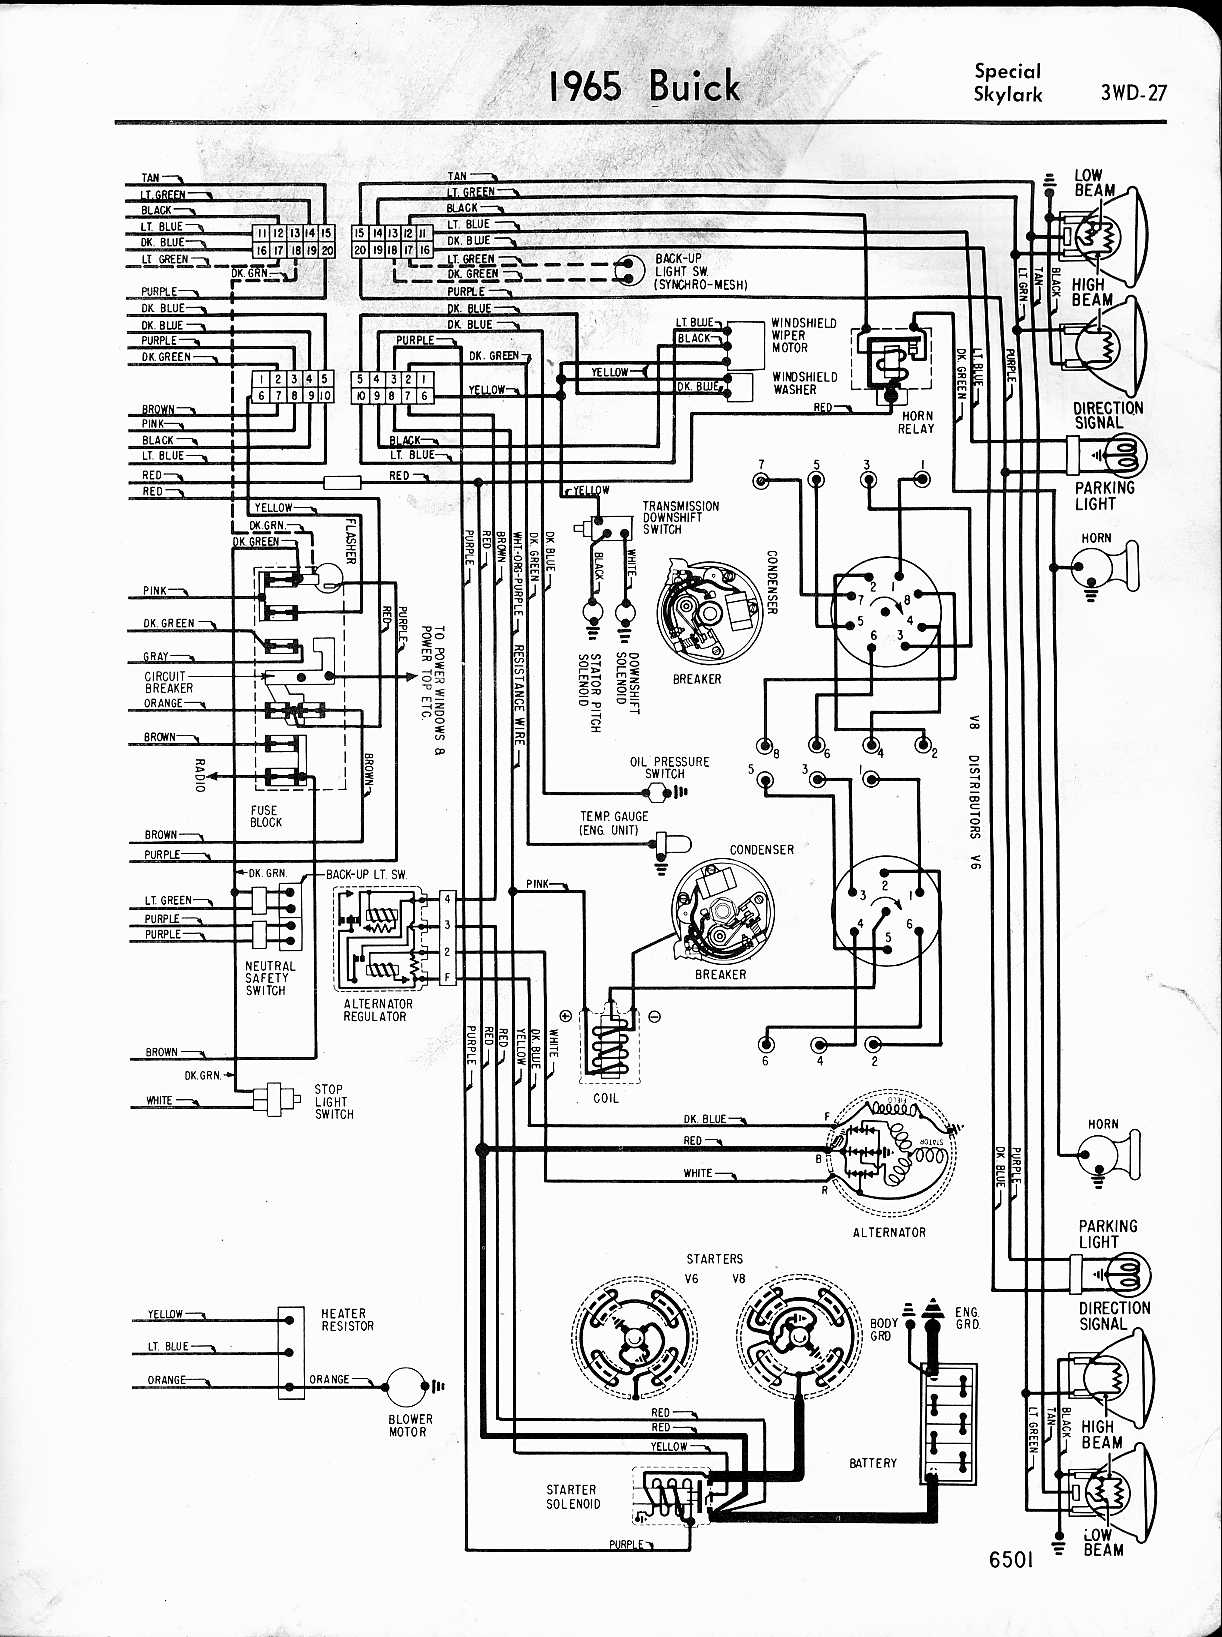 wiring diagram for 1969 buick skylark